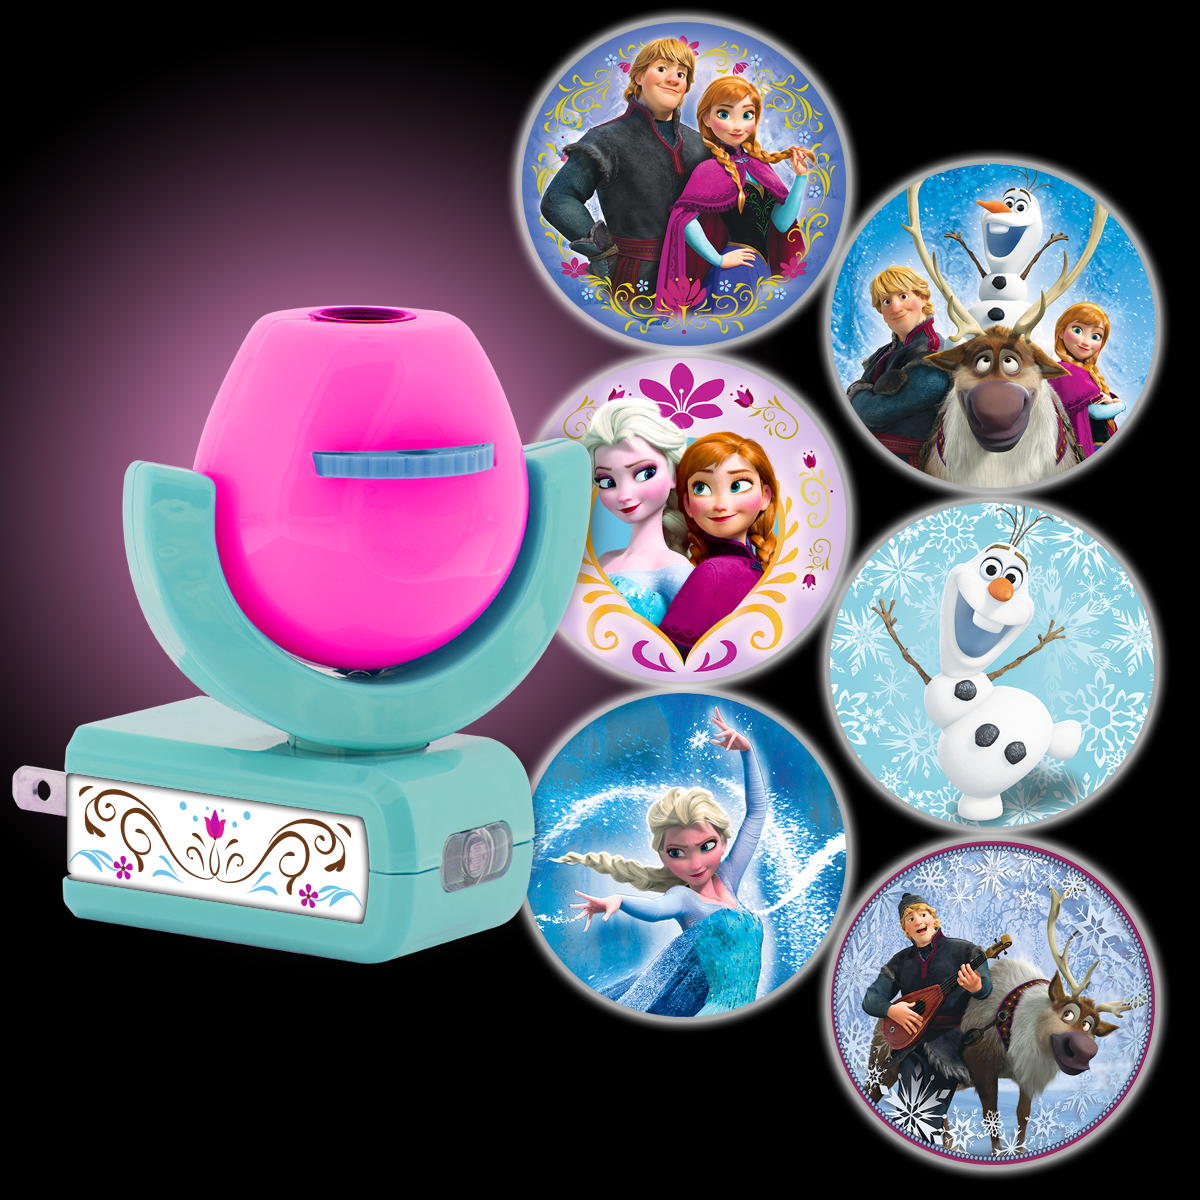 Projectables Disney Frozen 6-Image LED Plug-In Night Light, Light Sensing, 25282